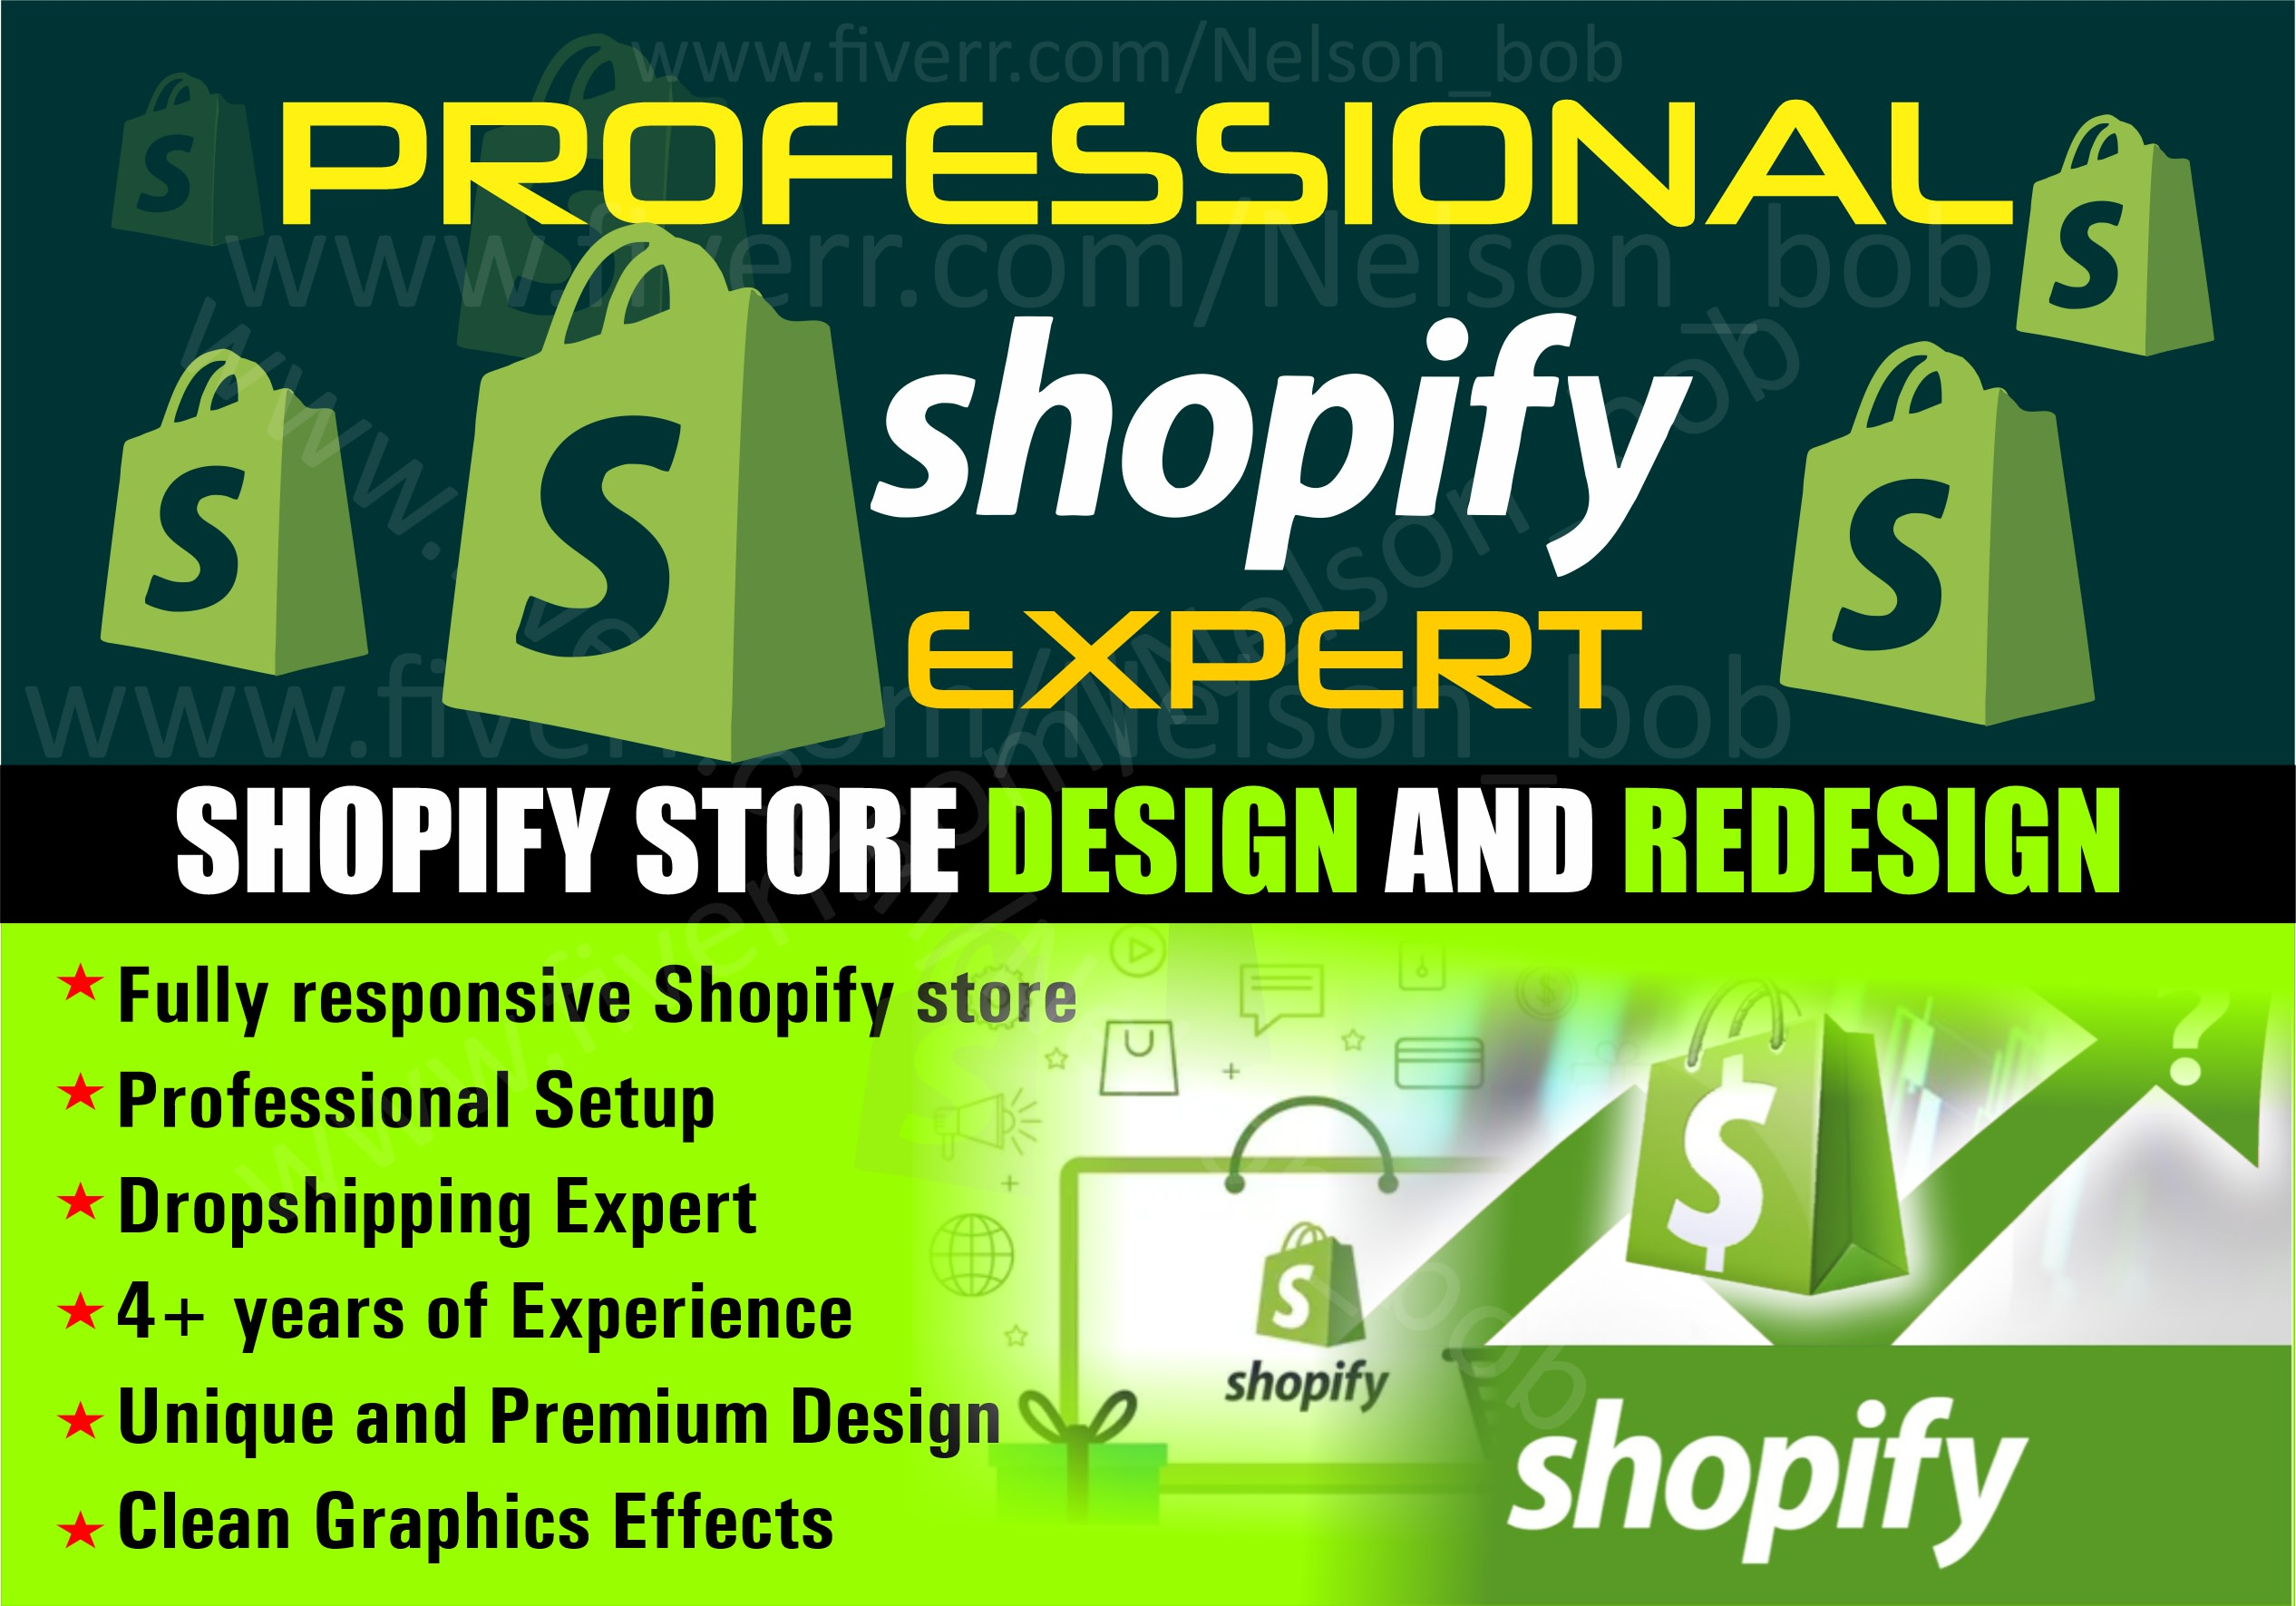 I will design or redesign shopify website design shopify store design, FiverrBox